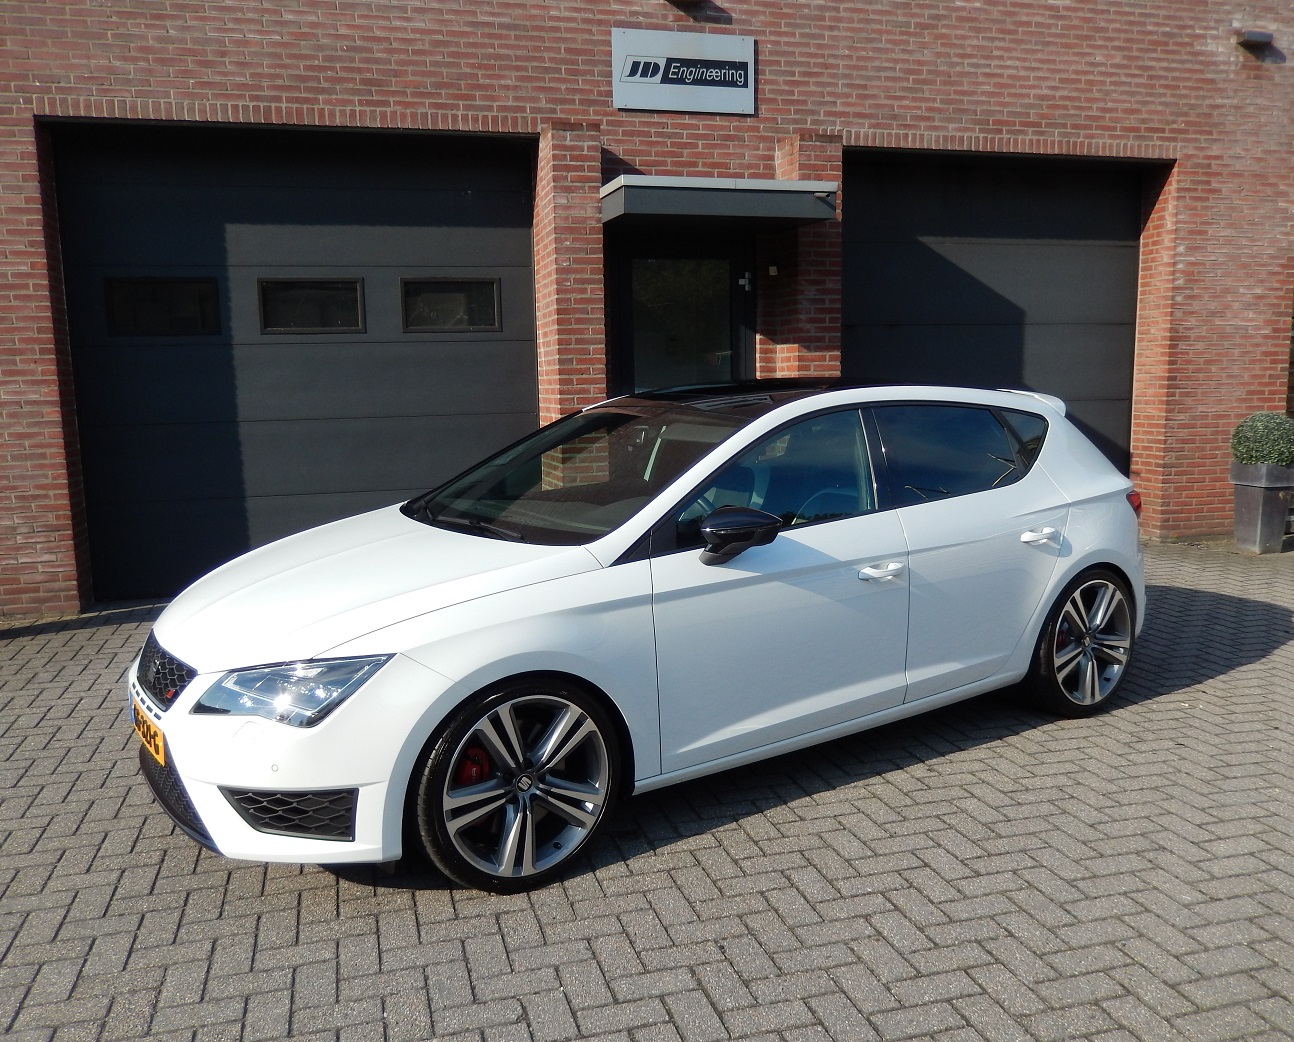 jdengineering seat leon 5f cupra jd460. Black Bedroom Furniture Sets. Home Design Ideas